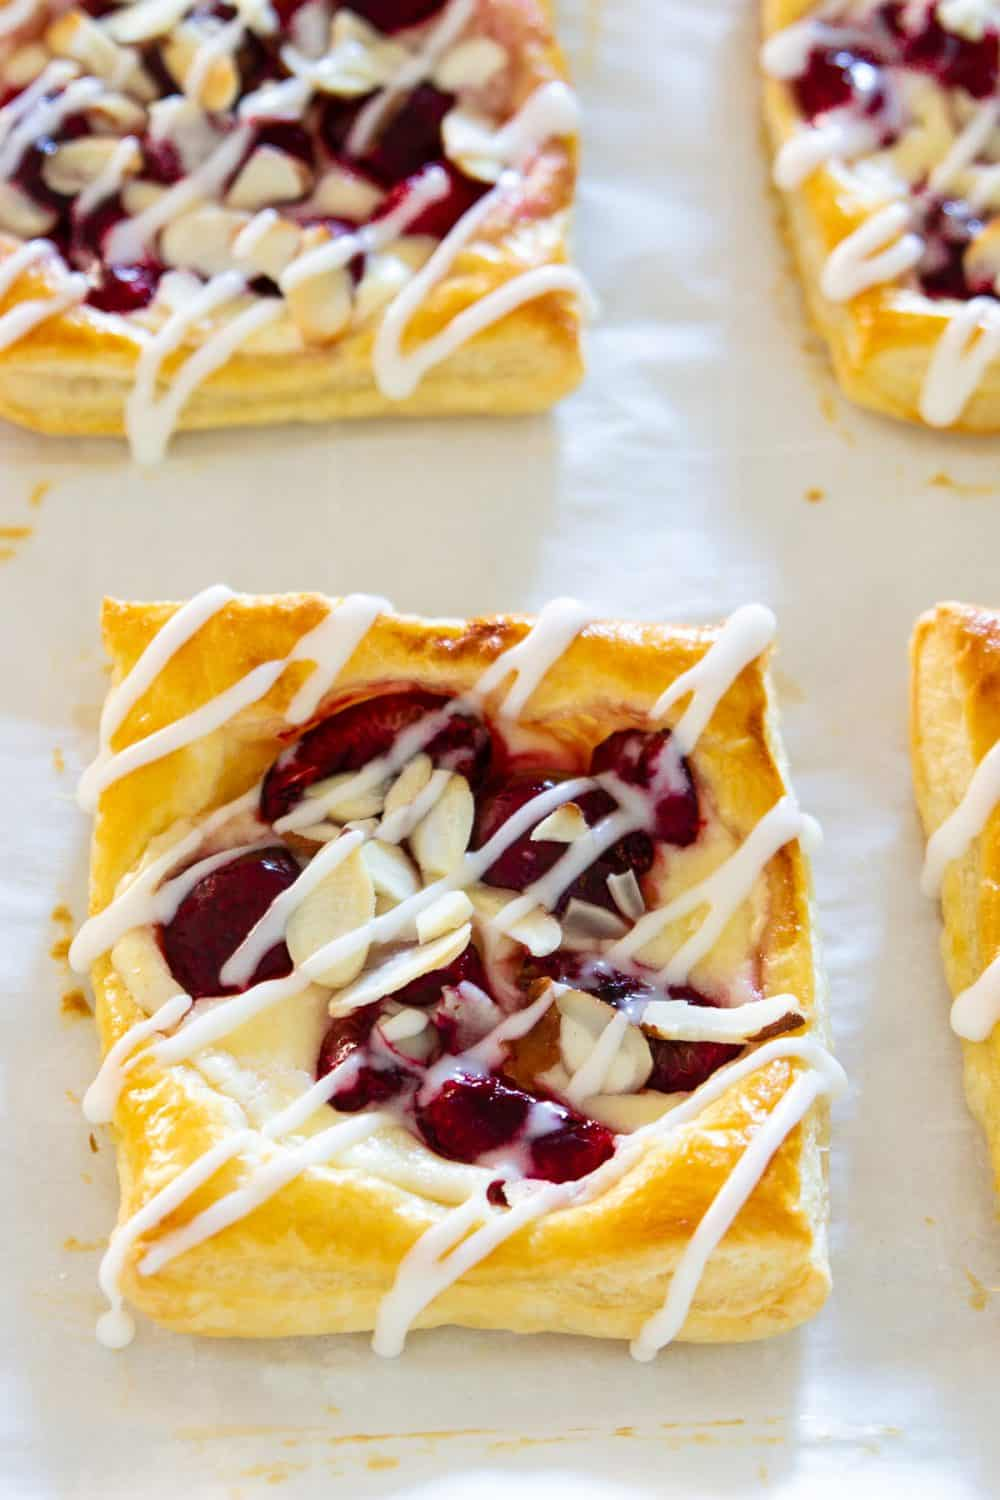 Make this beautiful cherry danish with cream cheese and almonds as a breakfast treat everyone will enjoy.